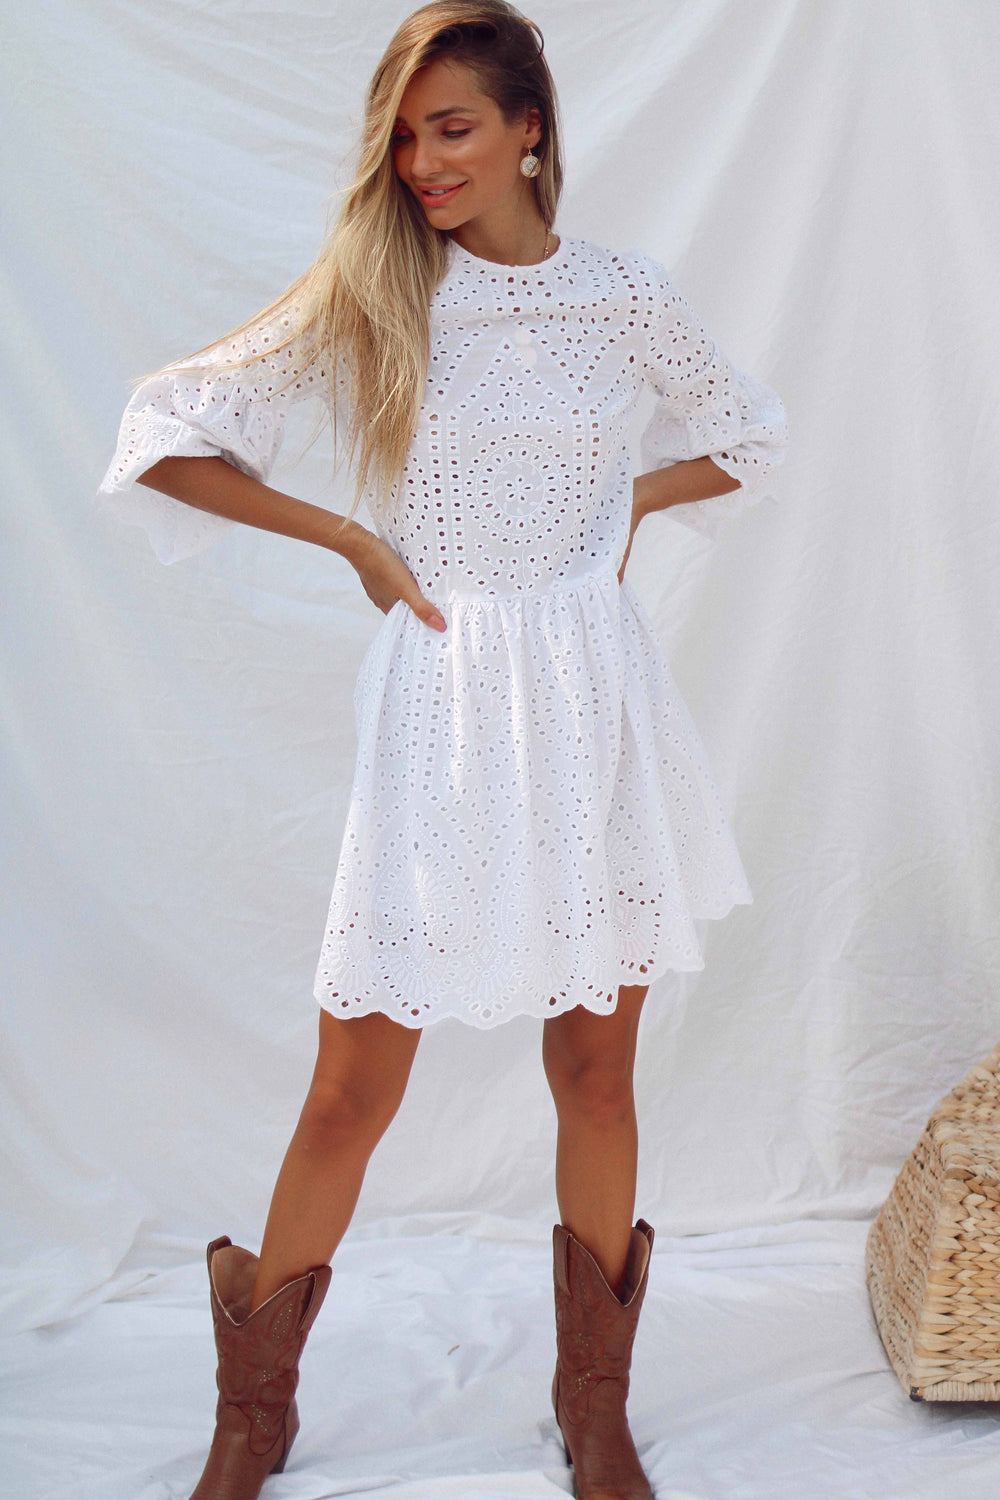 ROYA DRESS IN WHITE - Chic Le Frique